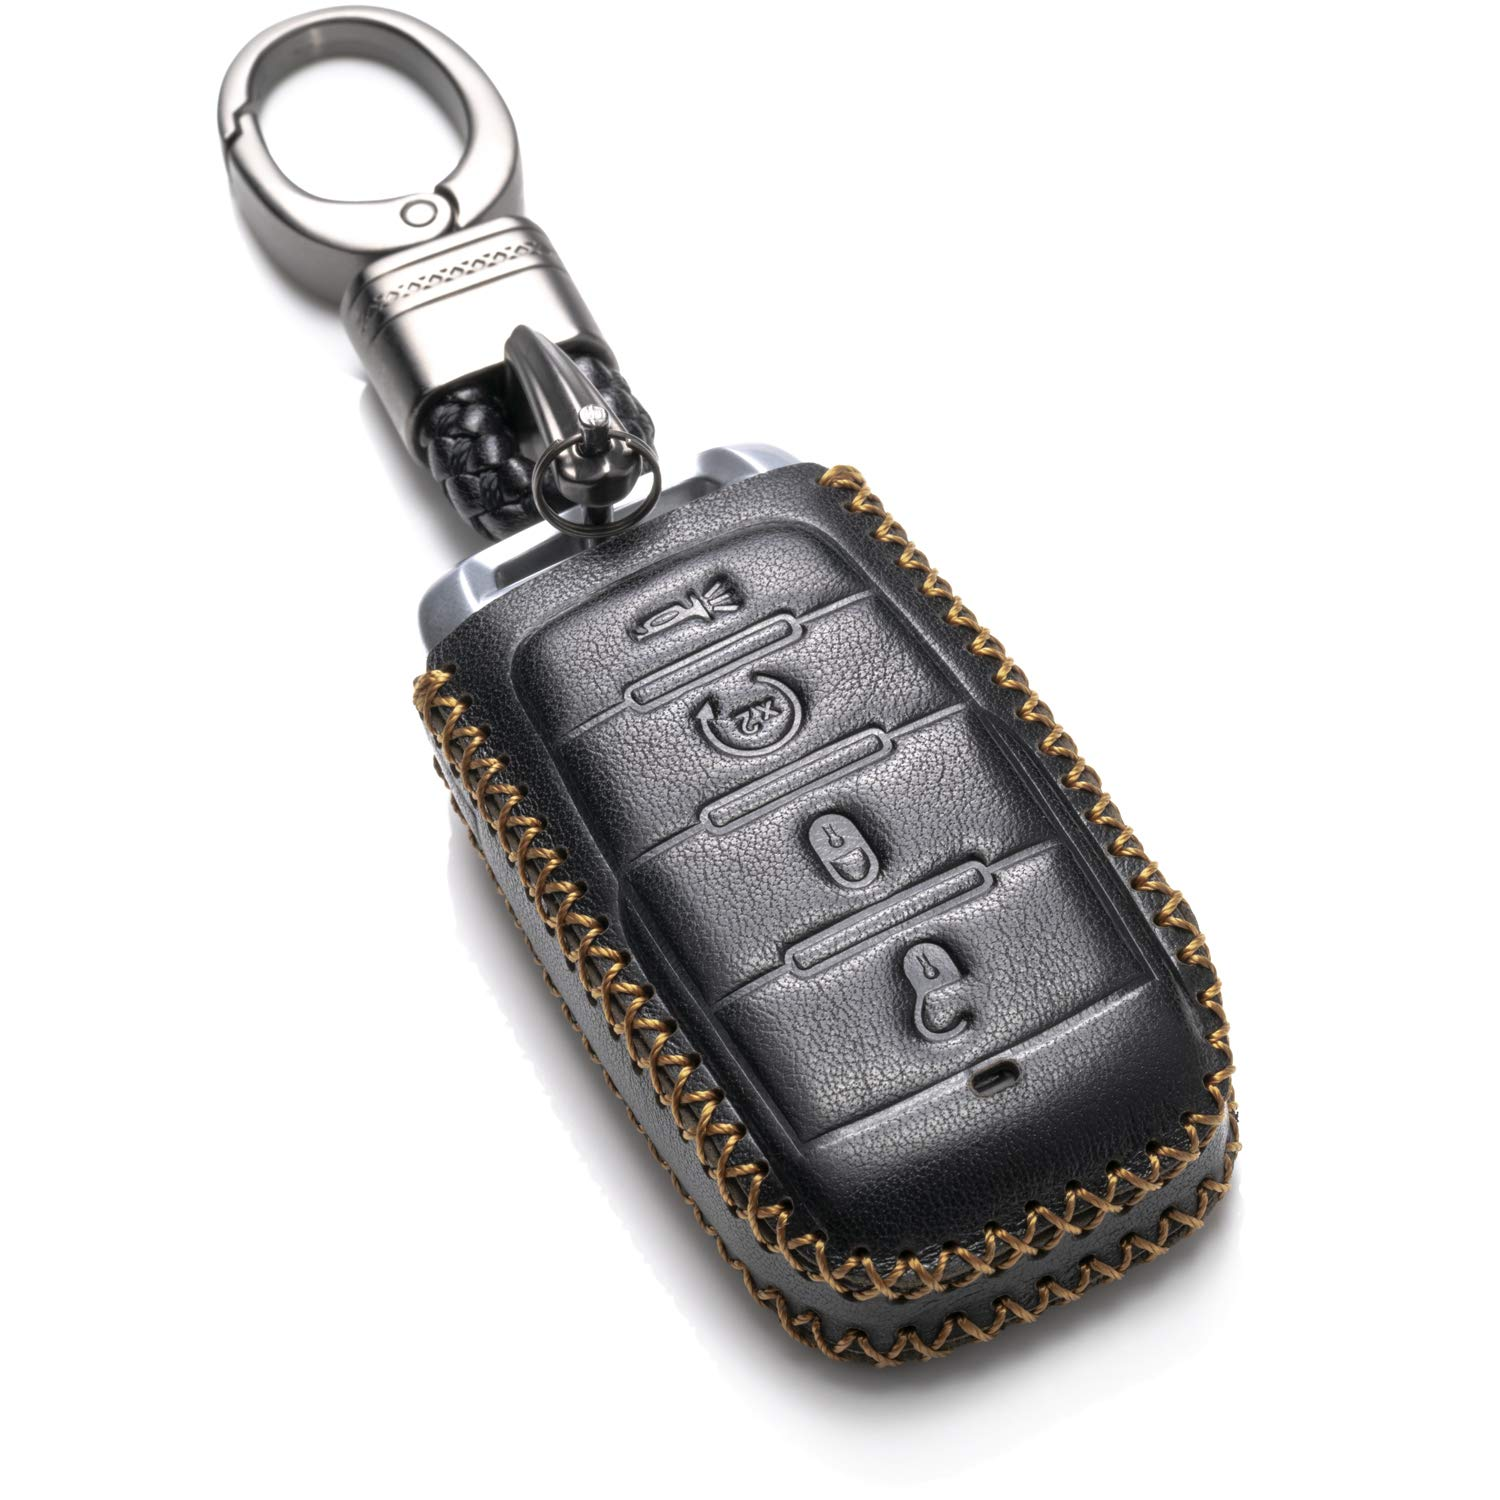 Vitodeco Genuine Leather Keyless Entry Remote Control Smart Key Case Cover with Leather Key Chain for 2019 RAM 1500 (4 Buttons, Brown) VITODECO INC